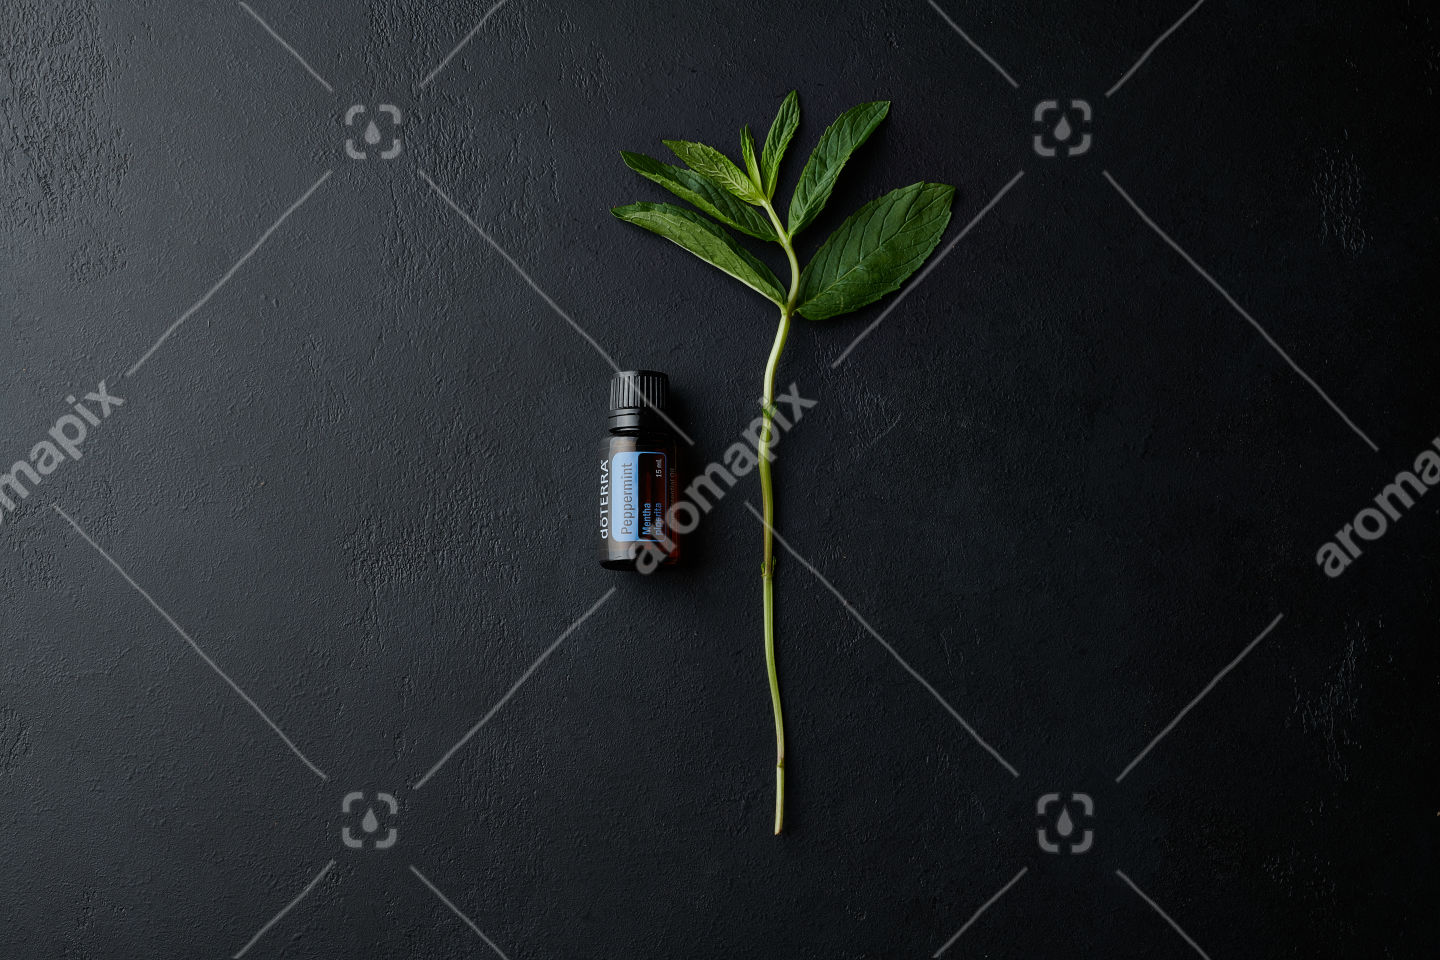 doTERRA Peppermint with a mint branch on black